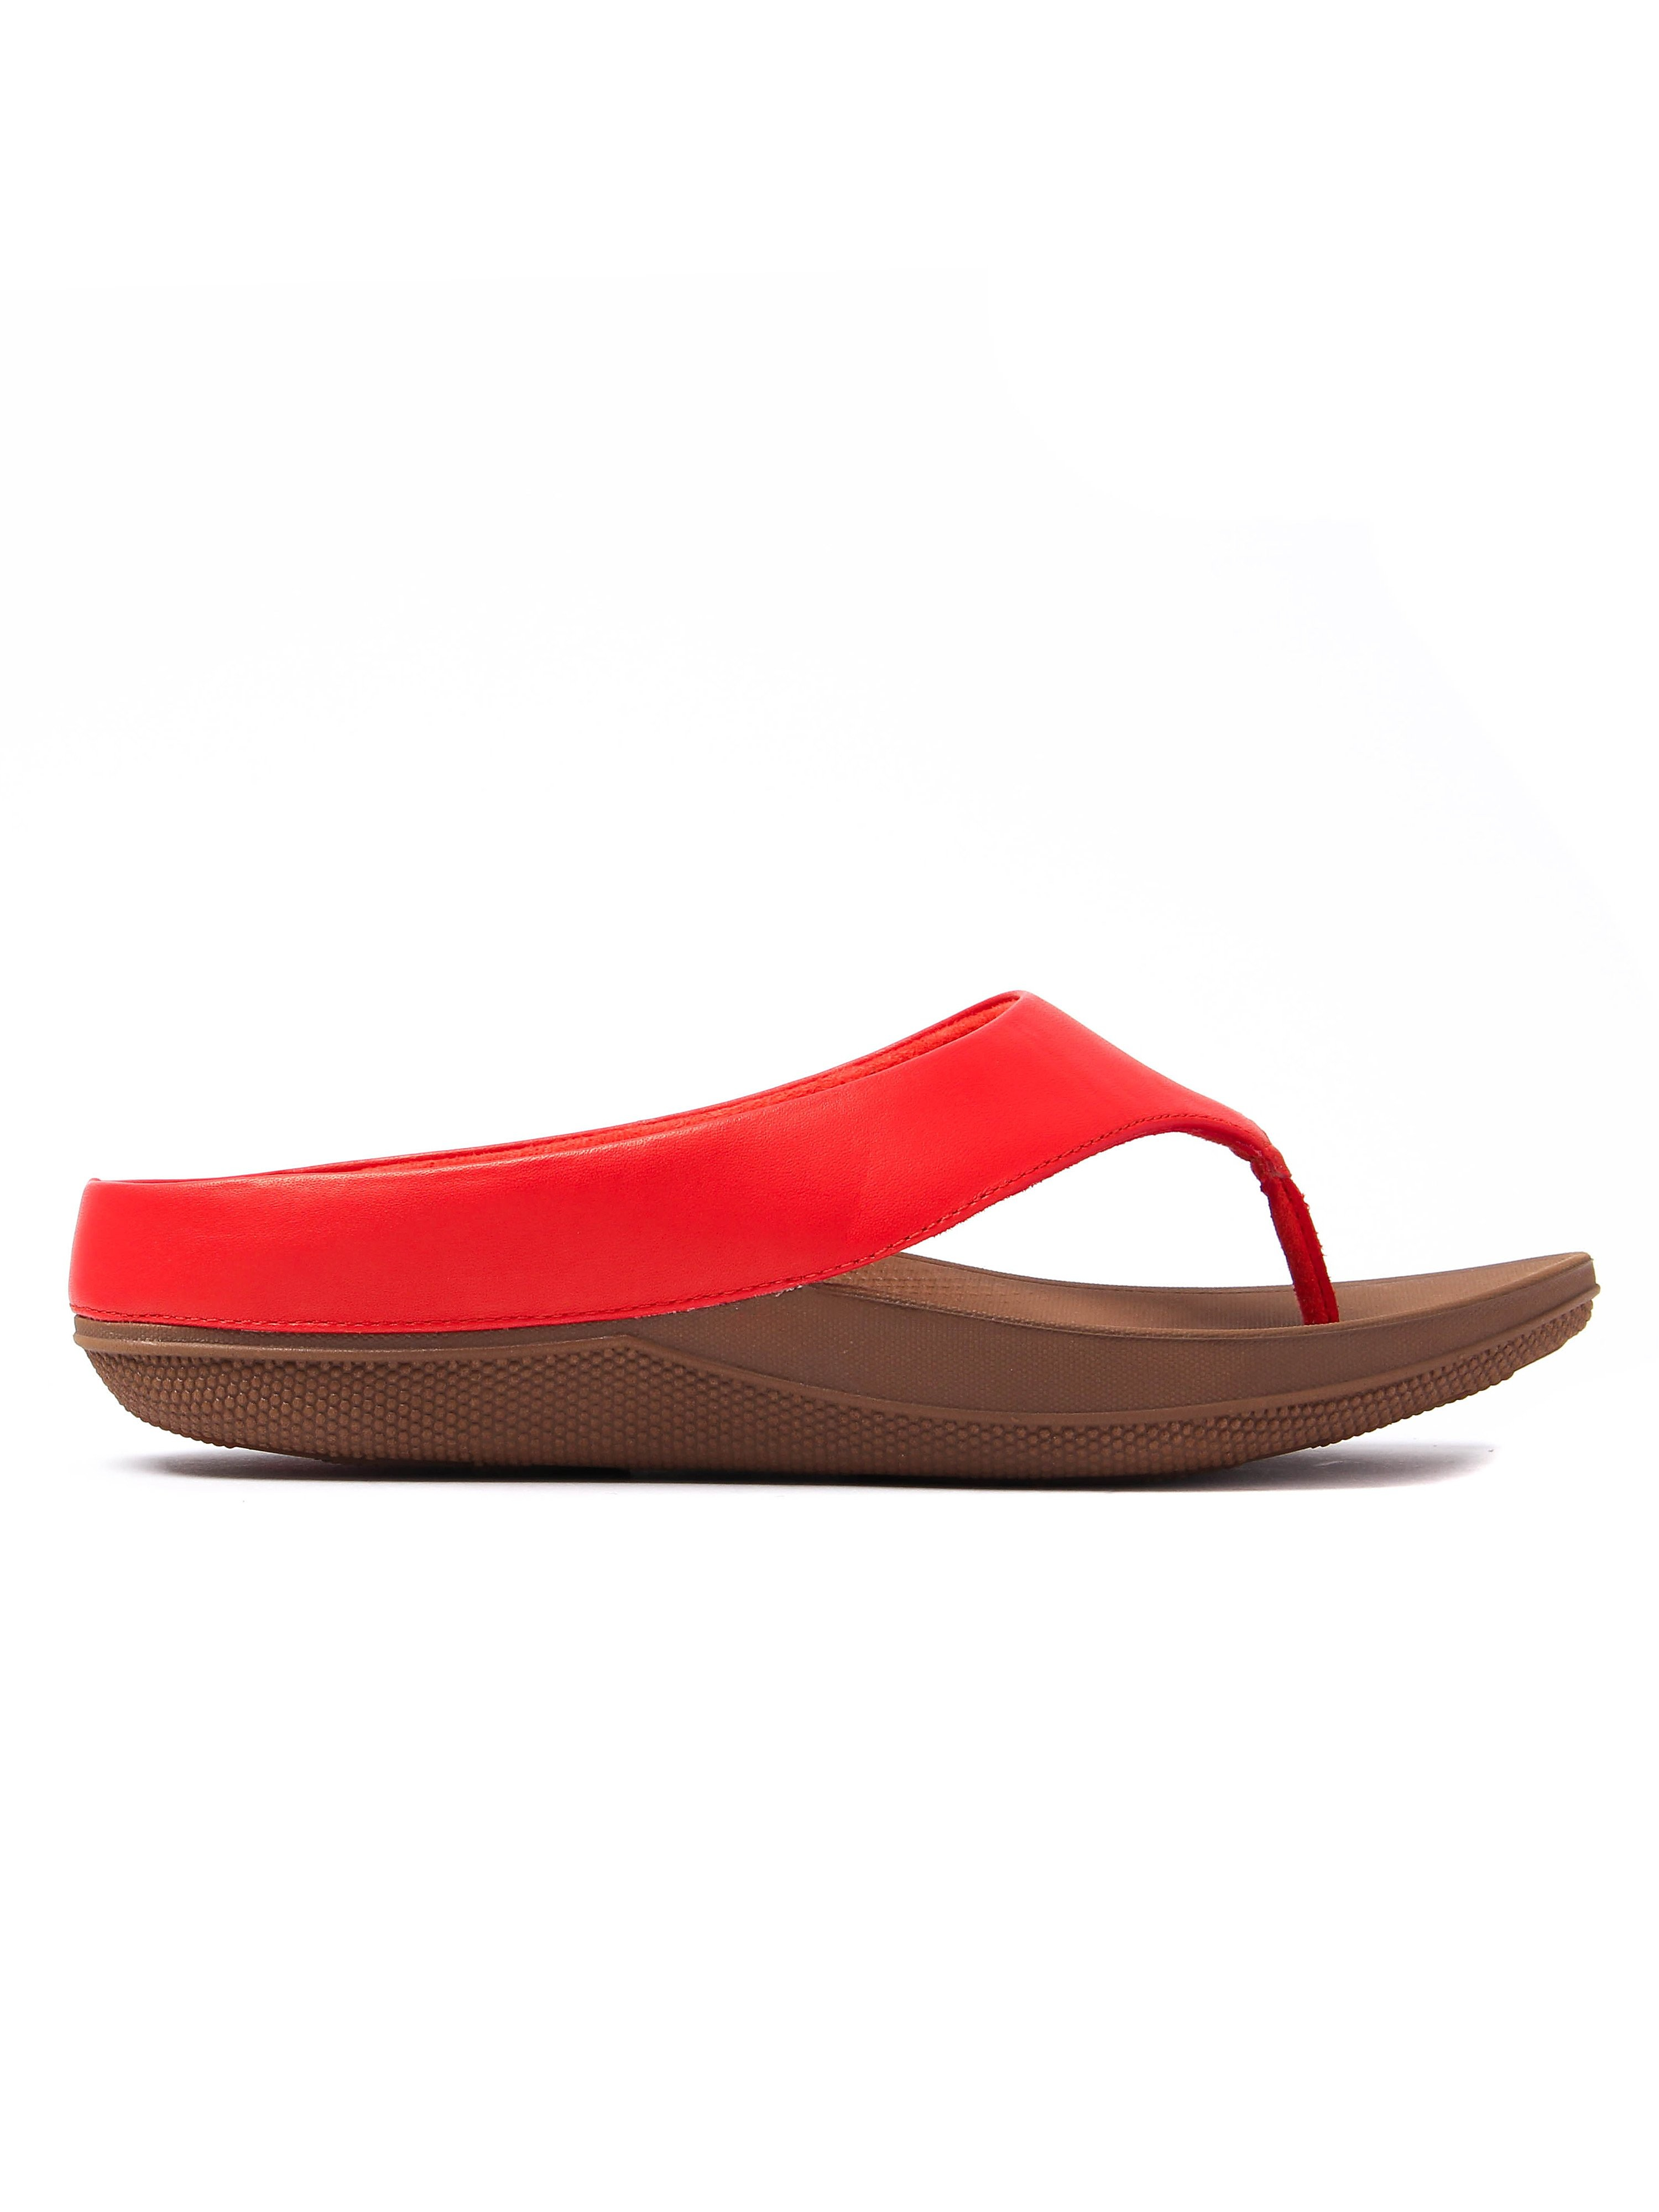 FitFlop Women's Superlight Ringer Sandals - Flame Leather